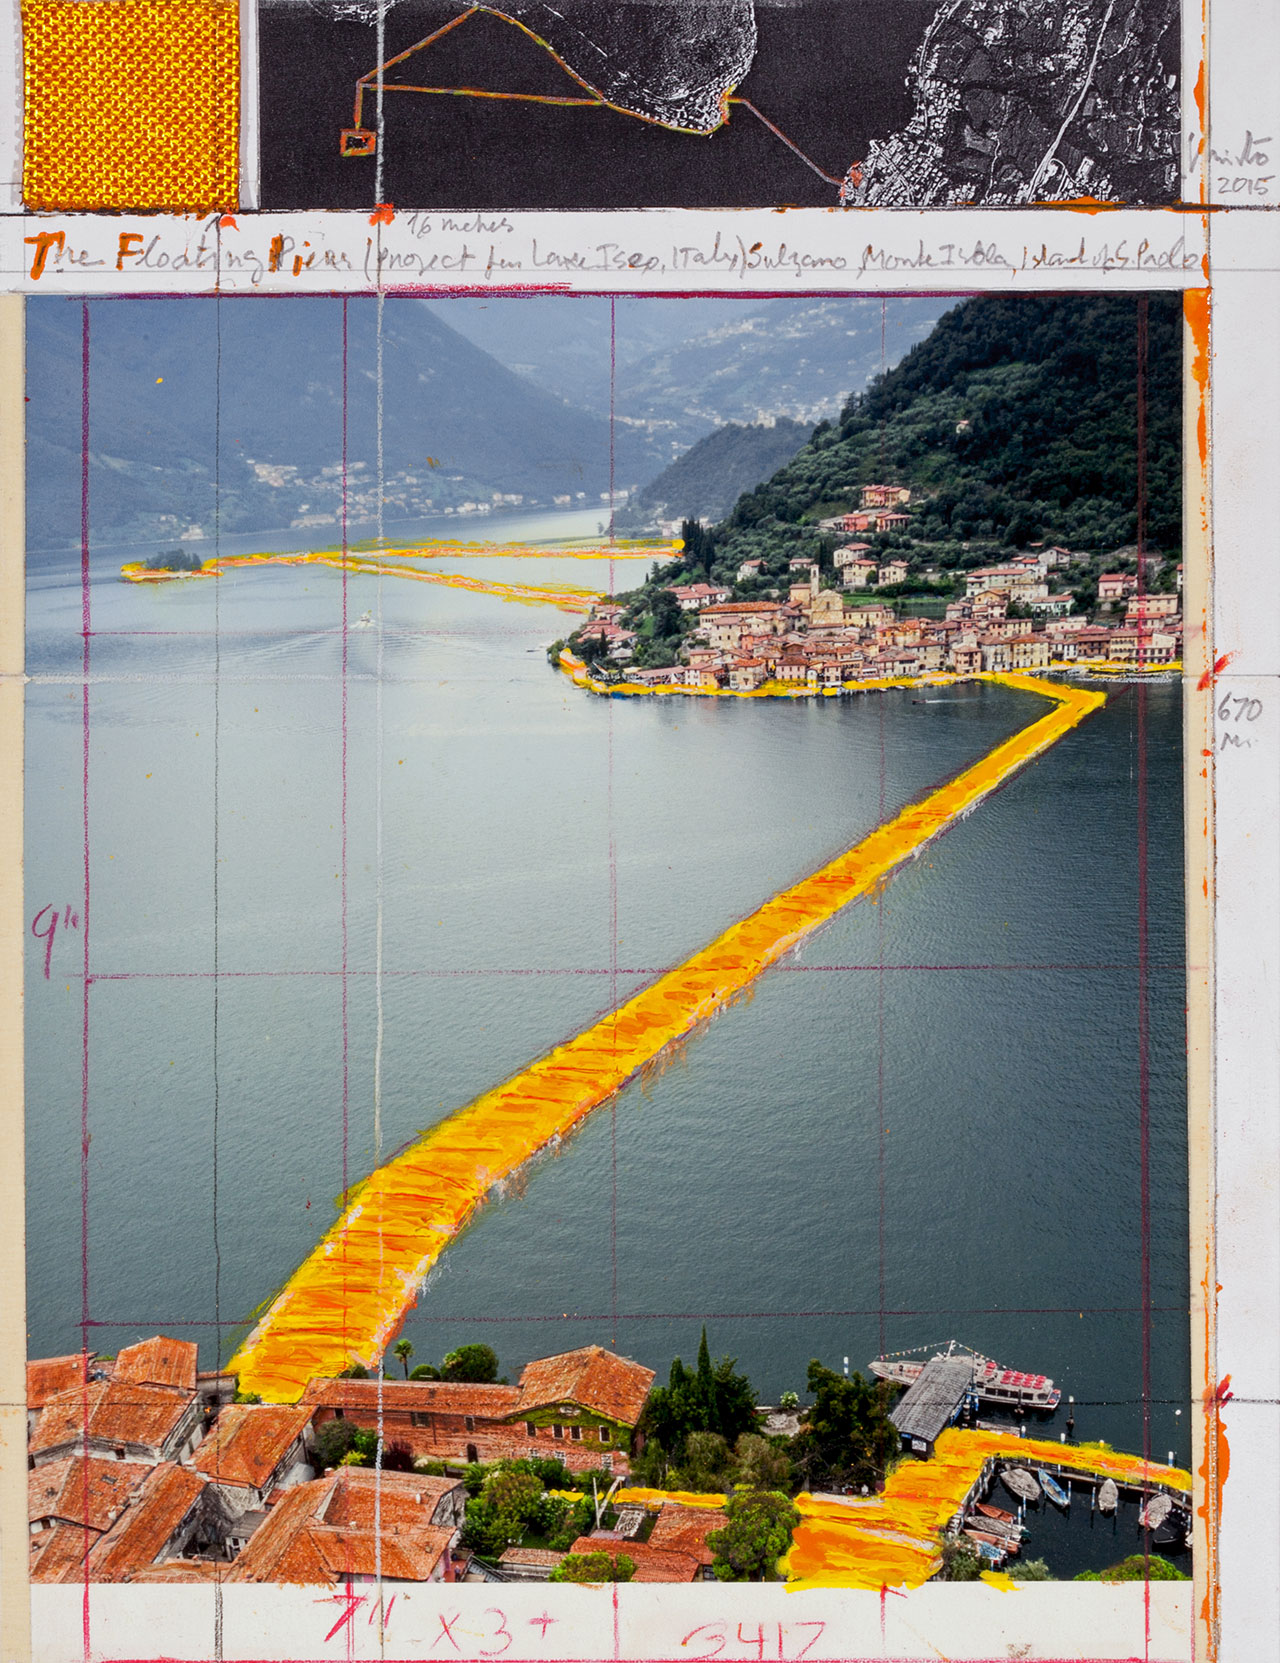 "Christo, Collage 2015. 11 x 8 1/2"" (28 x 21.5 cm). Pencil, wax crayon, enamel paint, photograph by Wolfgang Volz, aerial photograph and fabric sample. Photo by André Grossmann © 2015 Christo."